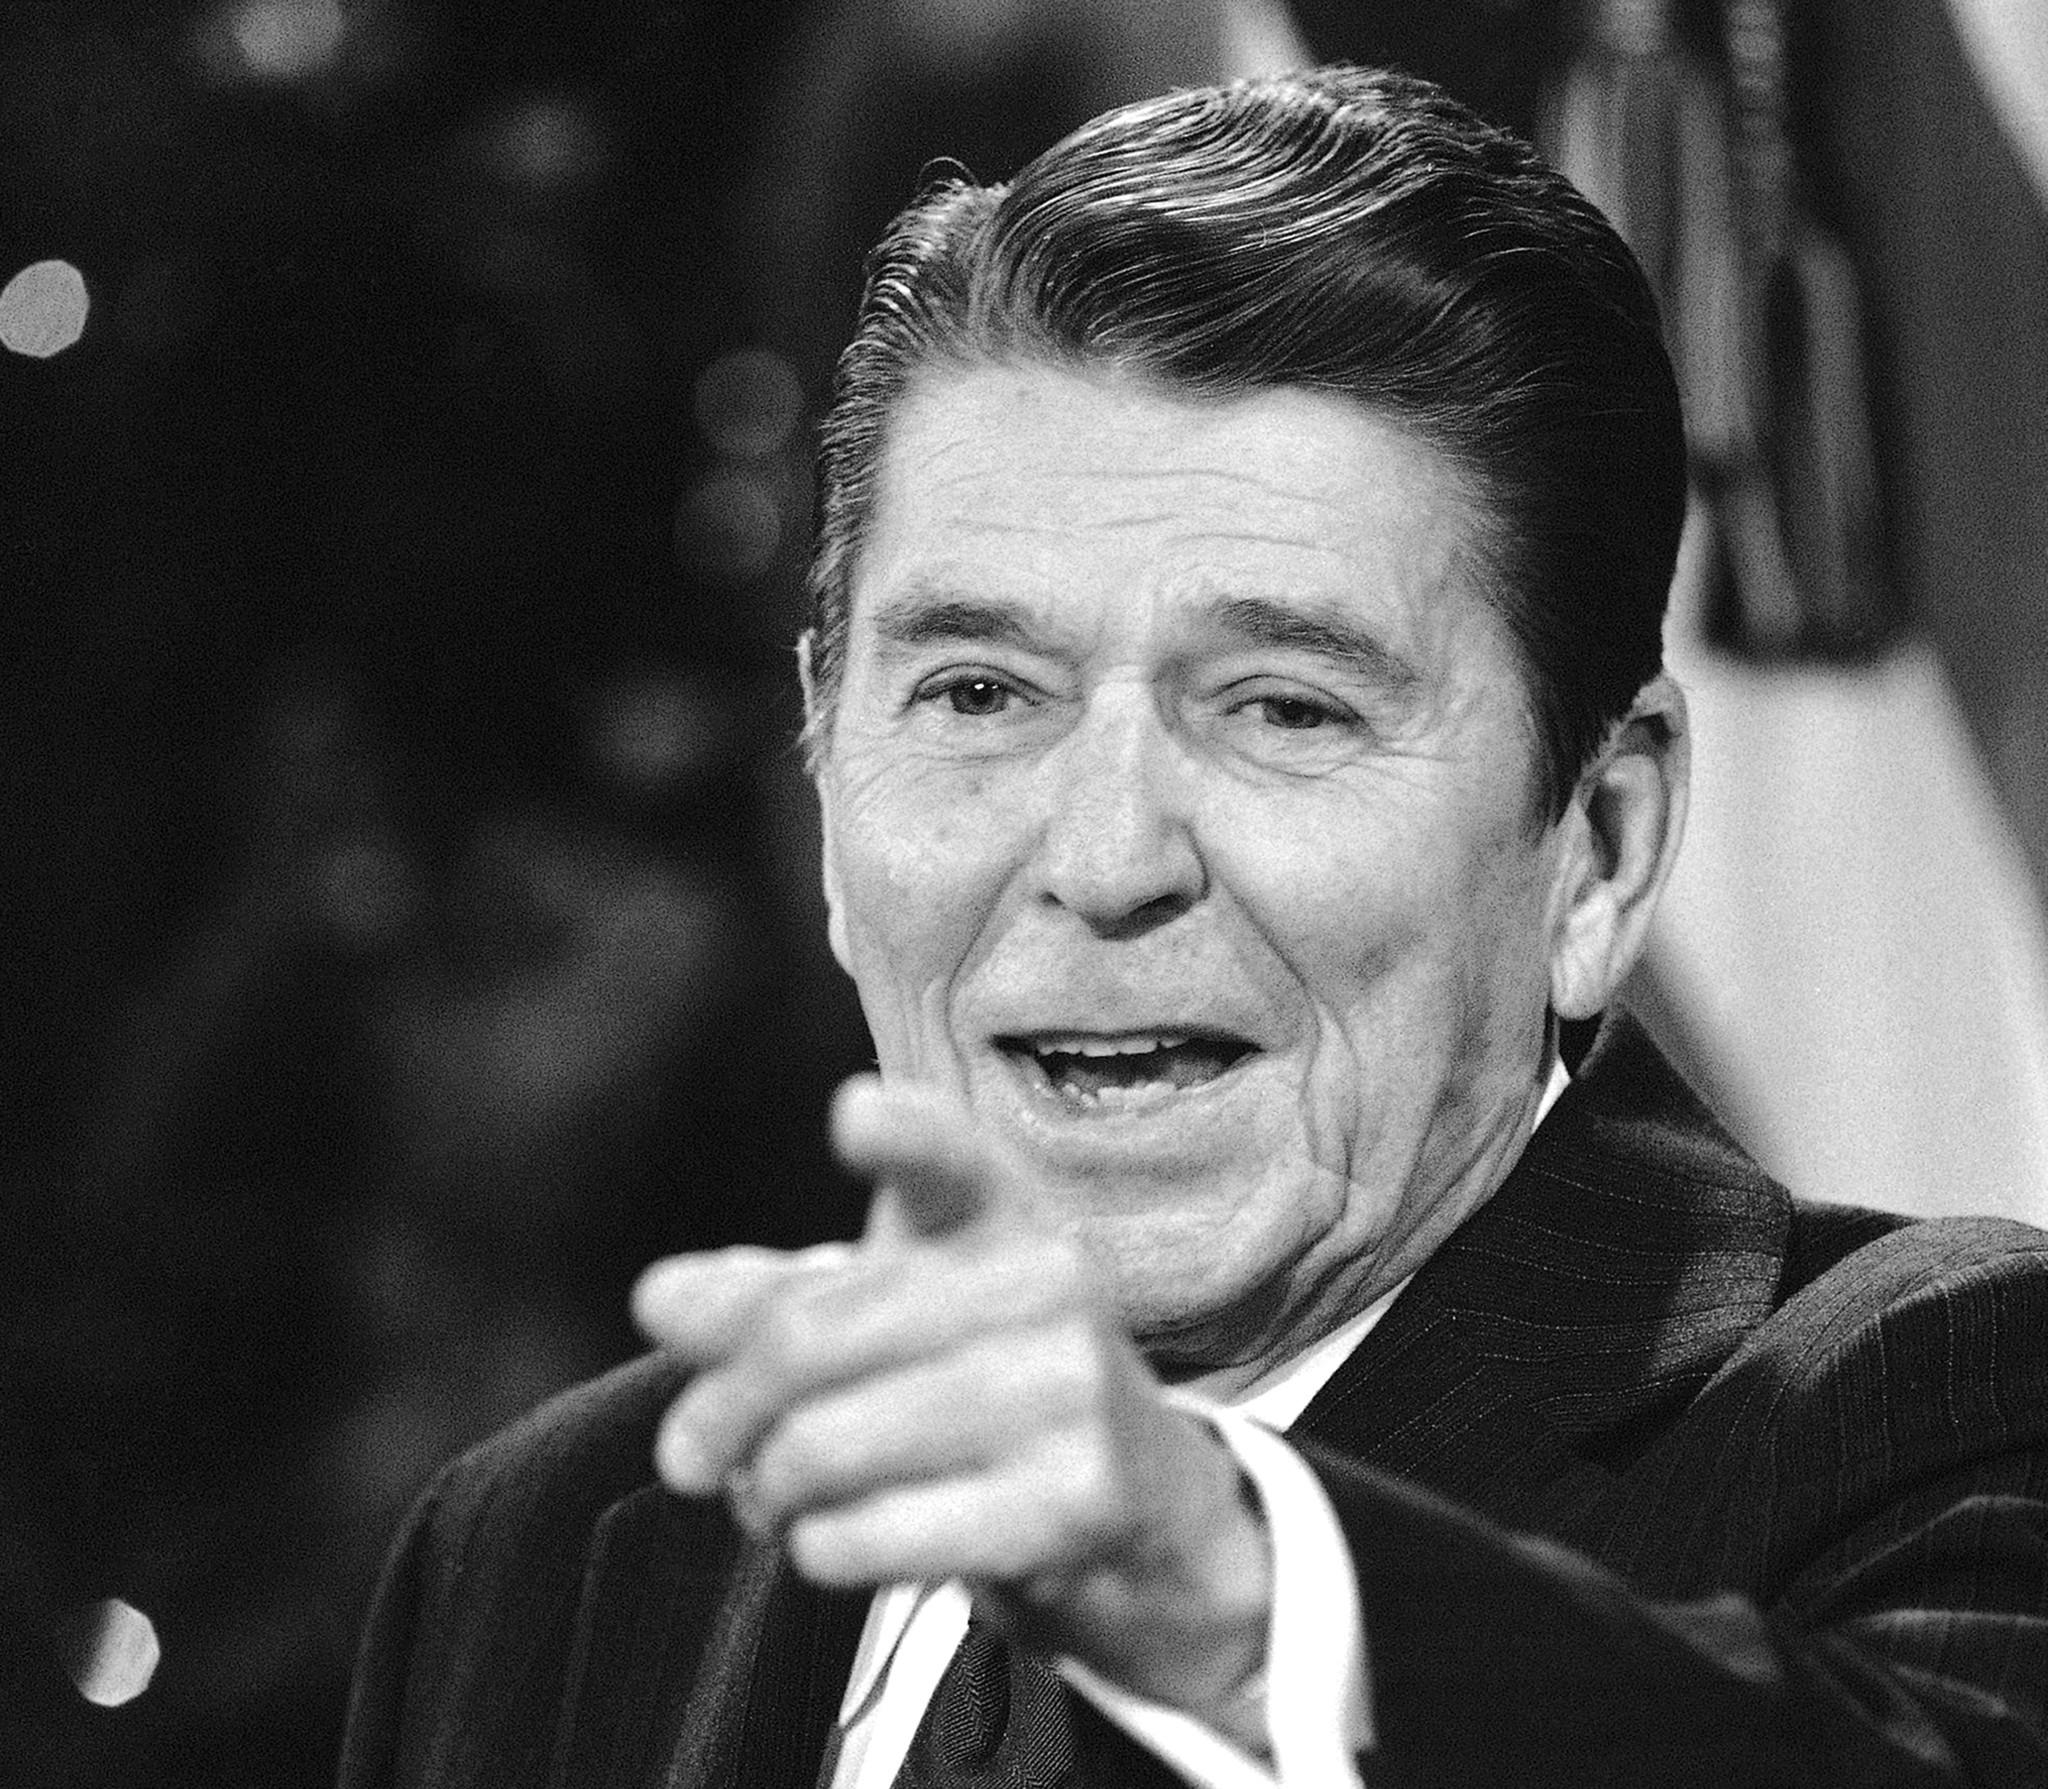 Some Republicans in Congress want to name a mountain peak in Nevada after President Reagan.